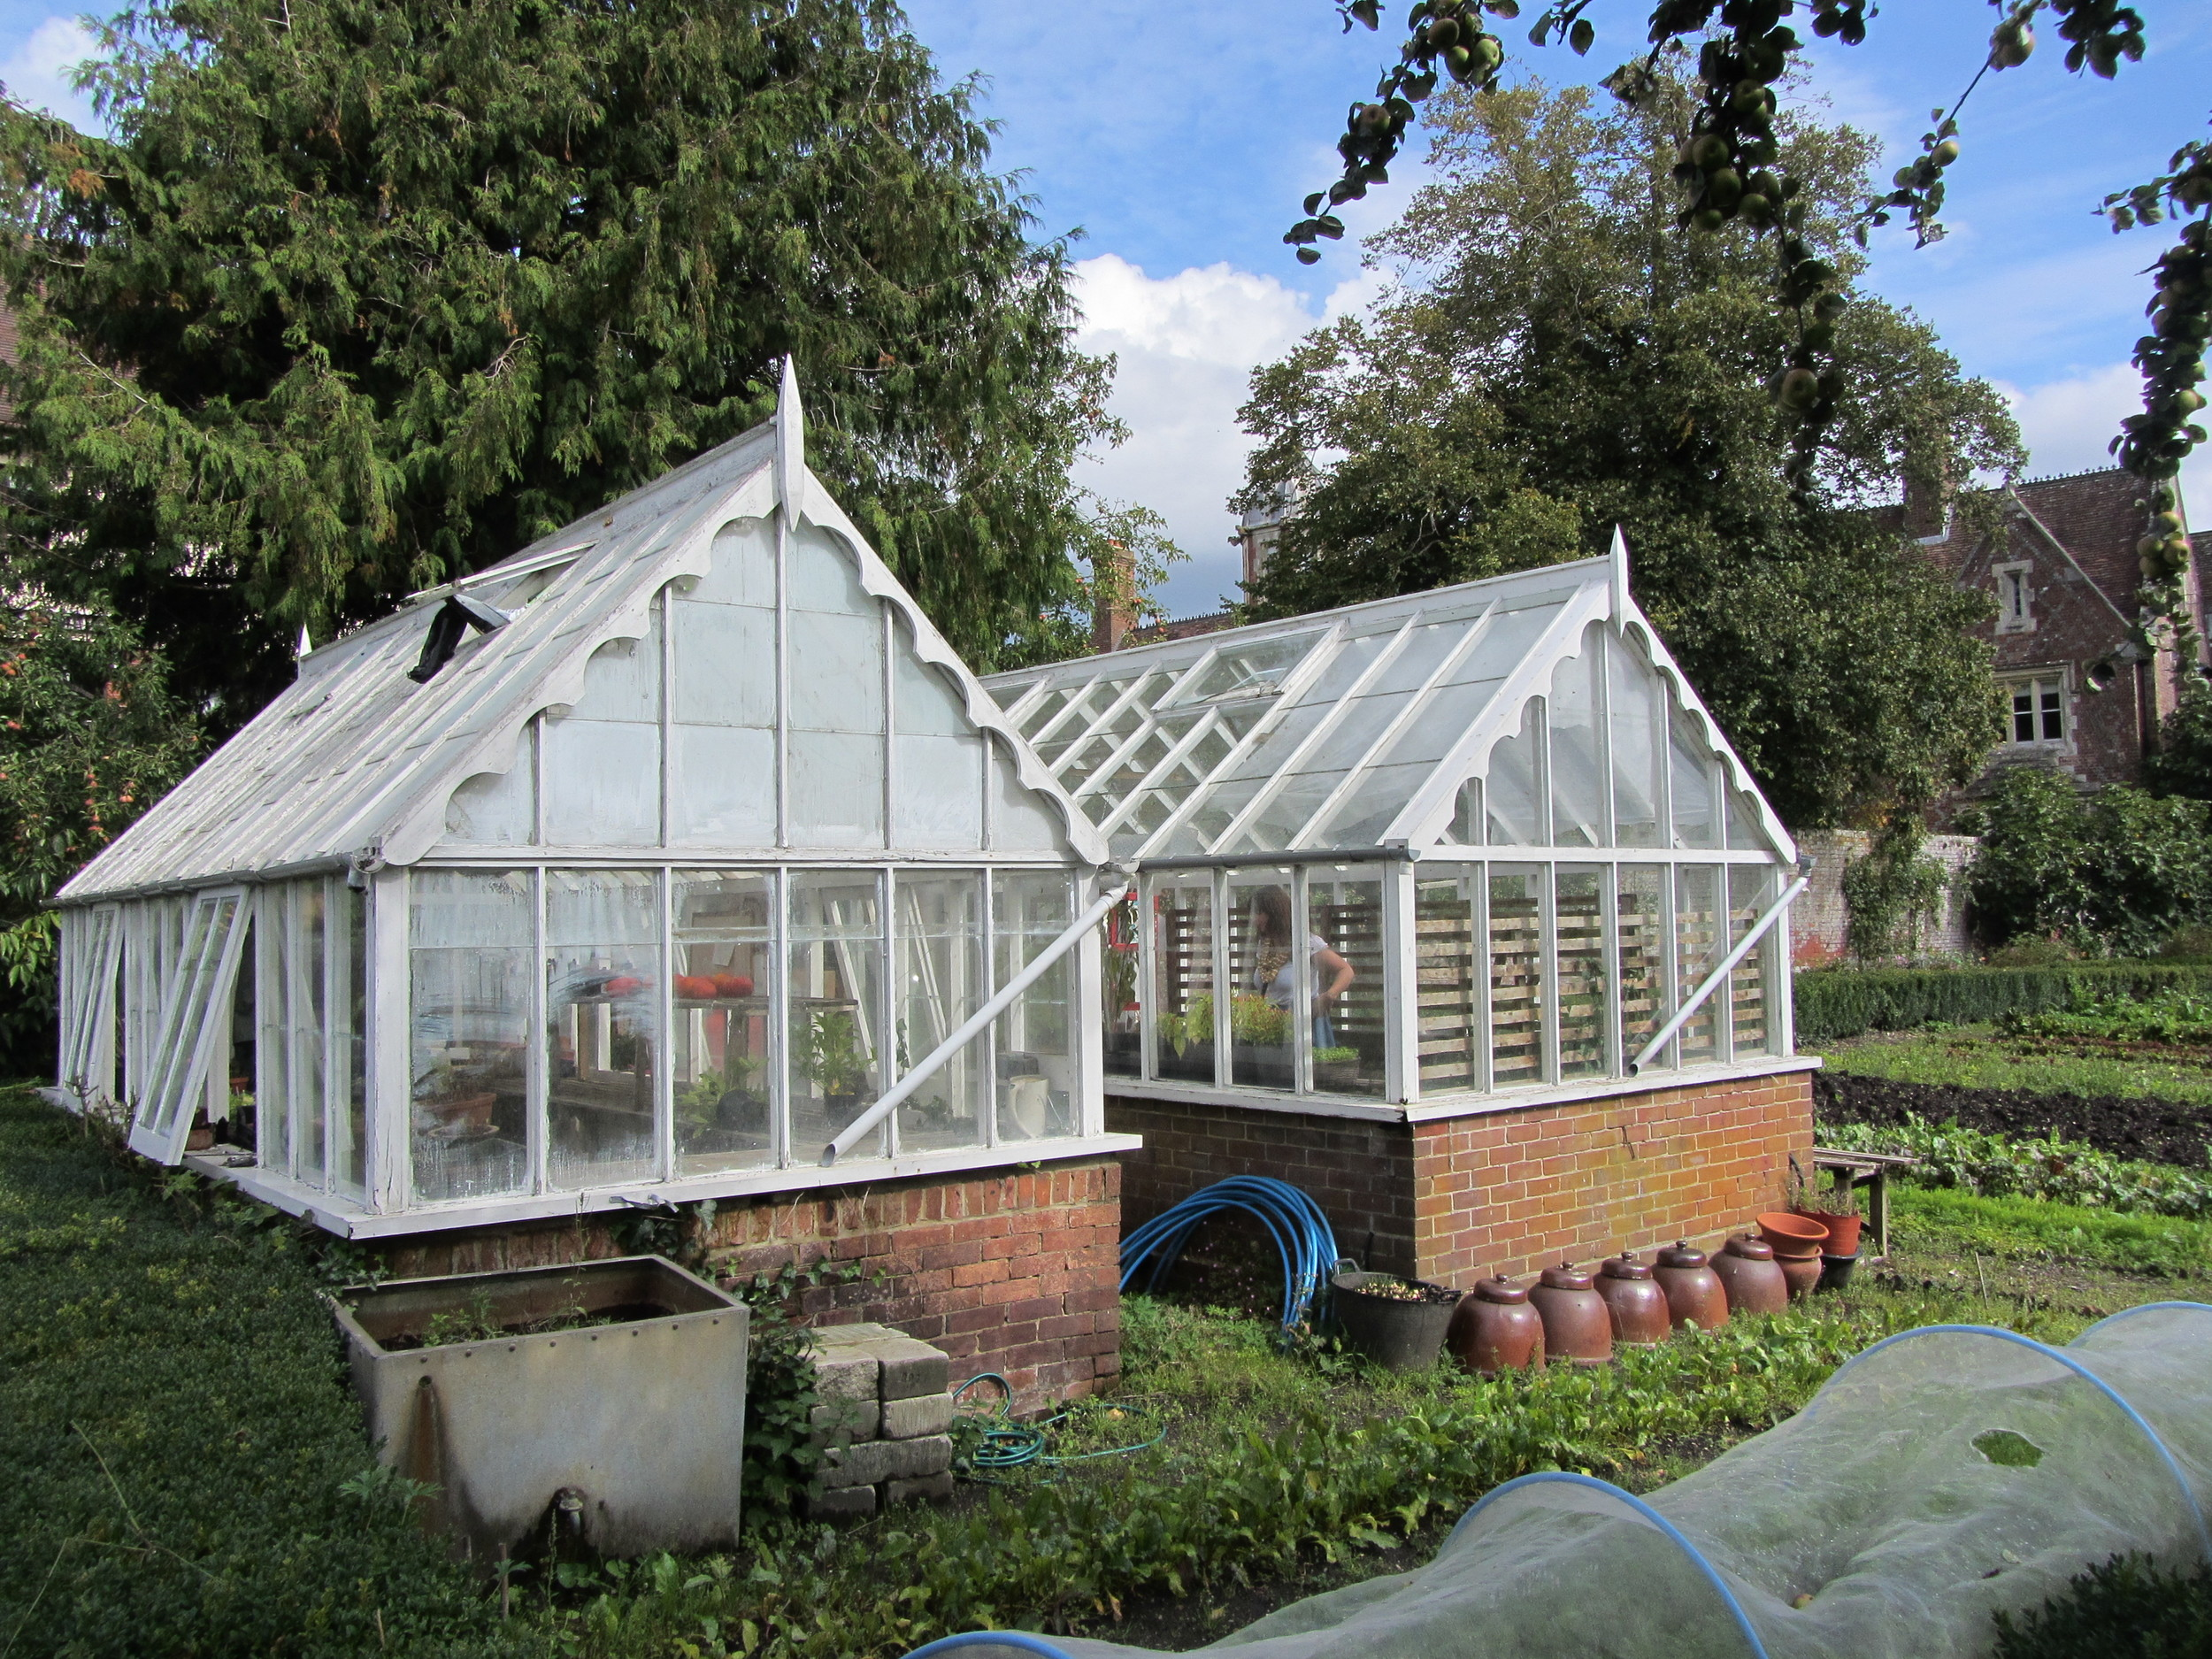 Greenhouses at Deans Court, Dorset